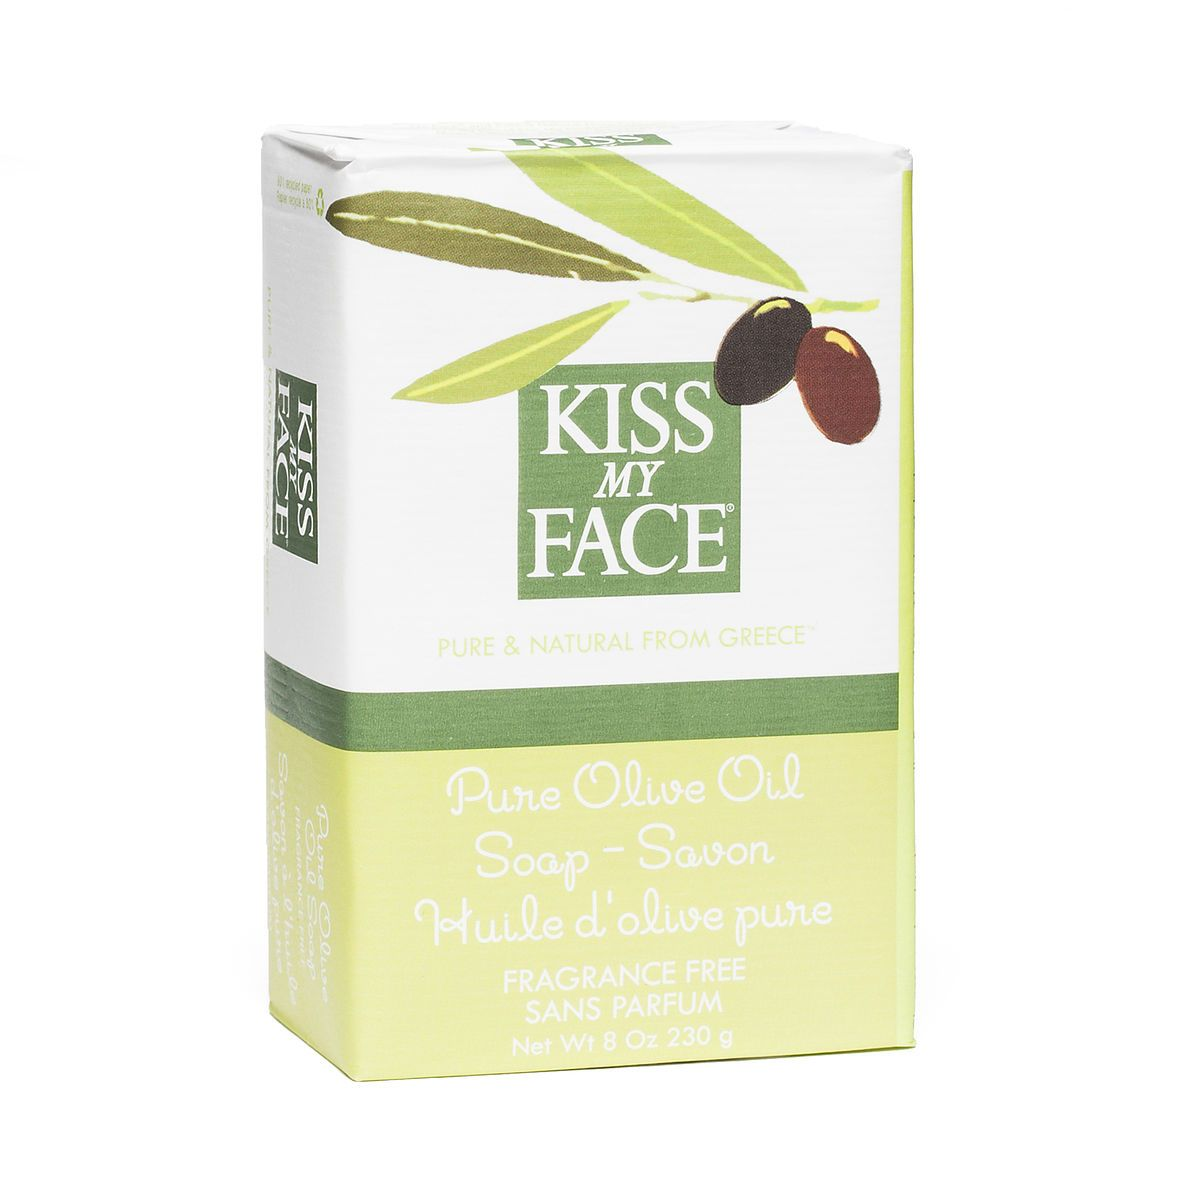 Kiss My Face Pure Olive Oil Bar Soap www.theteelieblog.com A natural cleansing and moisturizing soap. For centuries the people of the Mediterranean have recognized the benefits of Olive Oil to the skin. Long lasting and made from the purest natural ingredients, it is a superb moisturizer suitable for all skin types. It's simple and pure. #thrivemarket